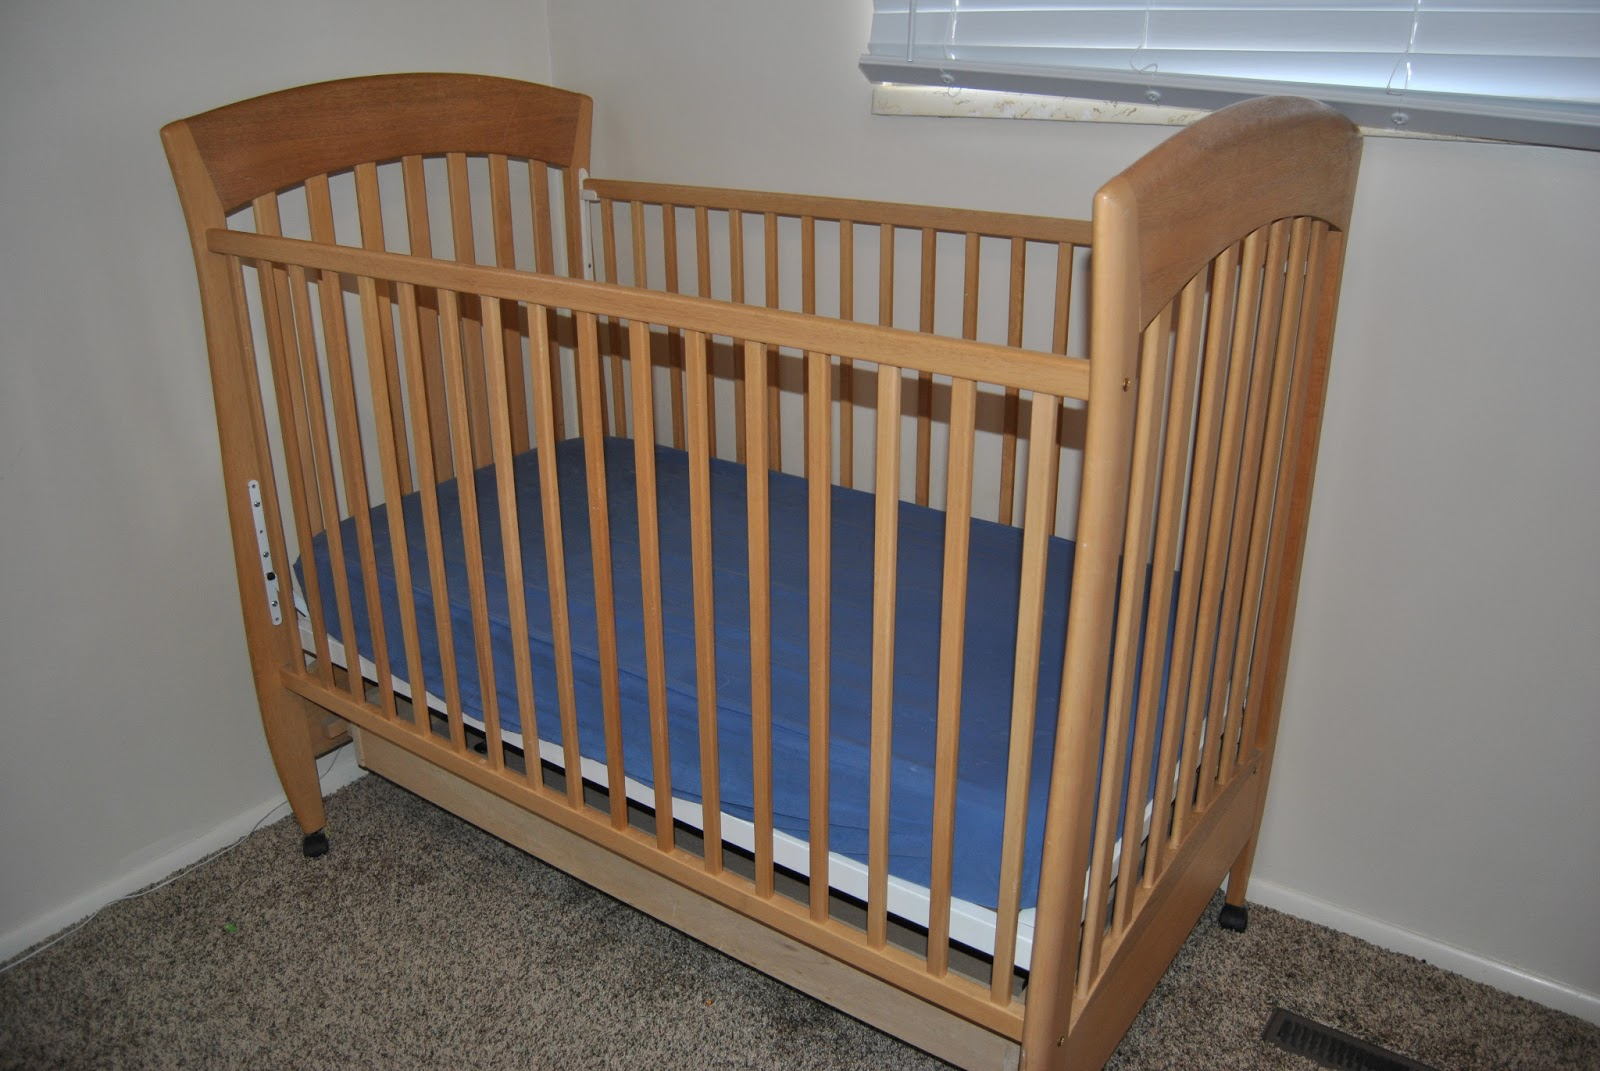 Our Moving Sale: Baby Oak Crib - $60 SOLD